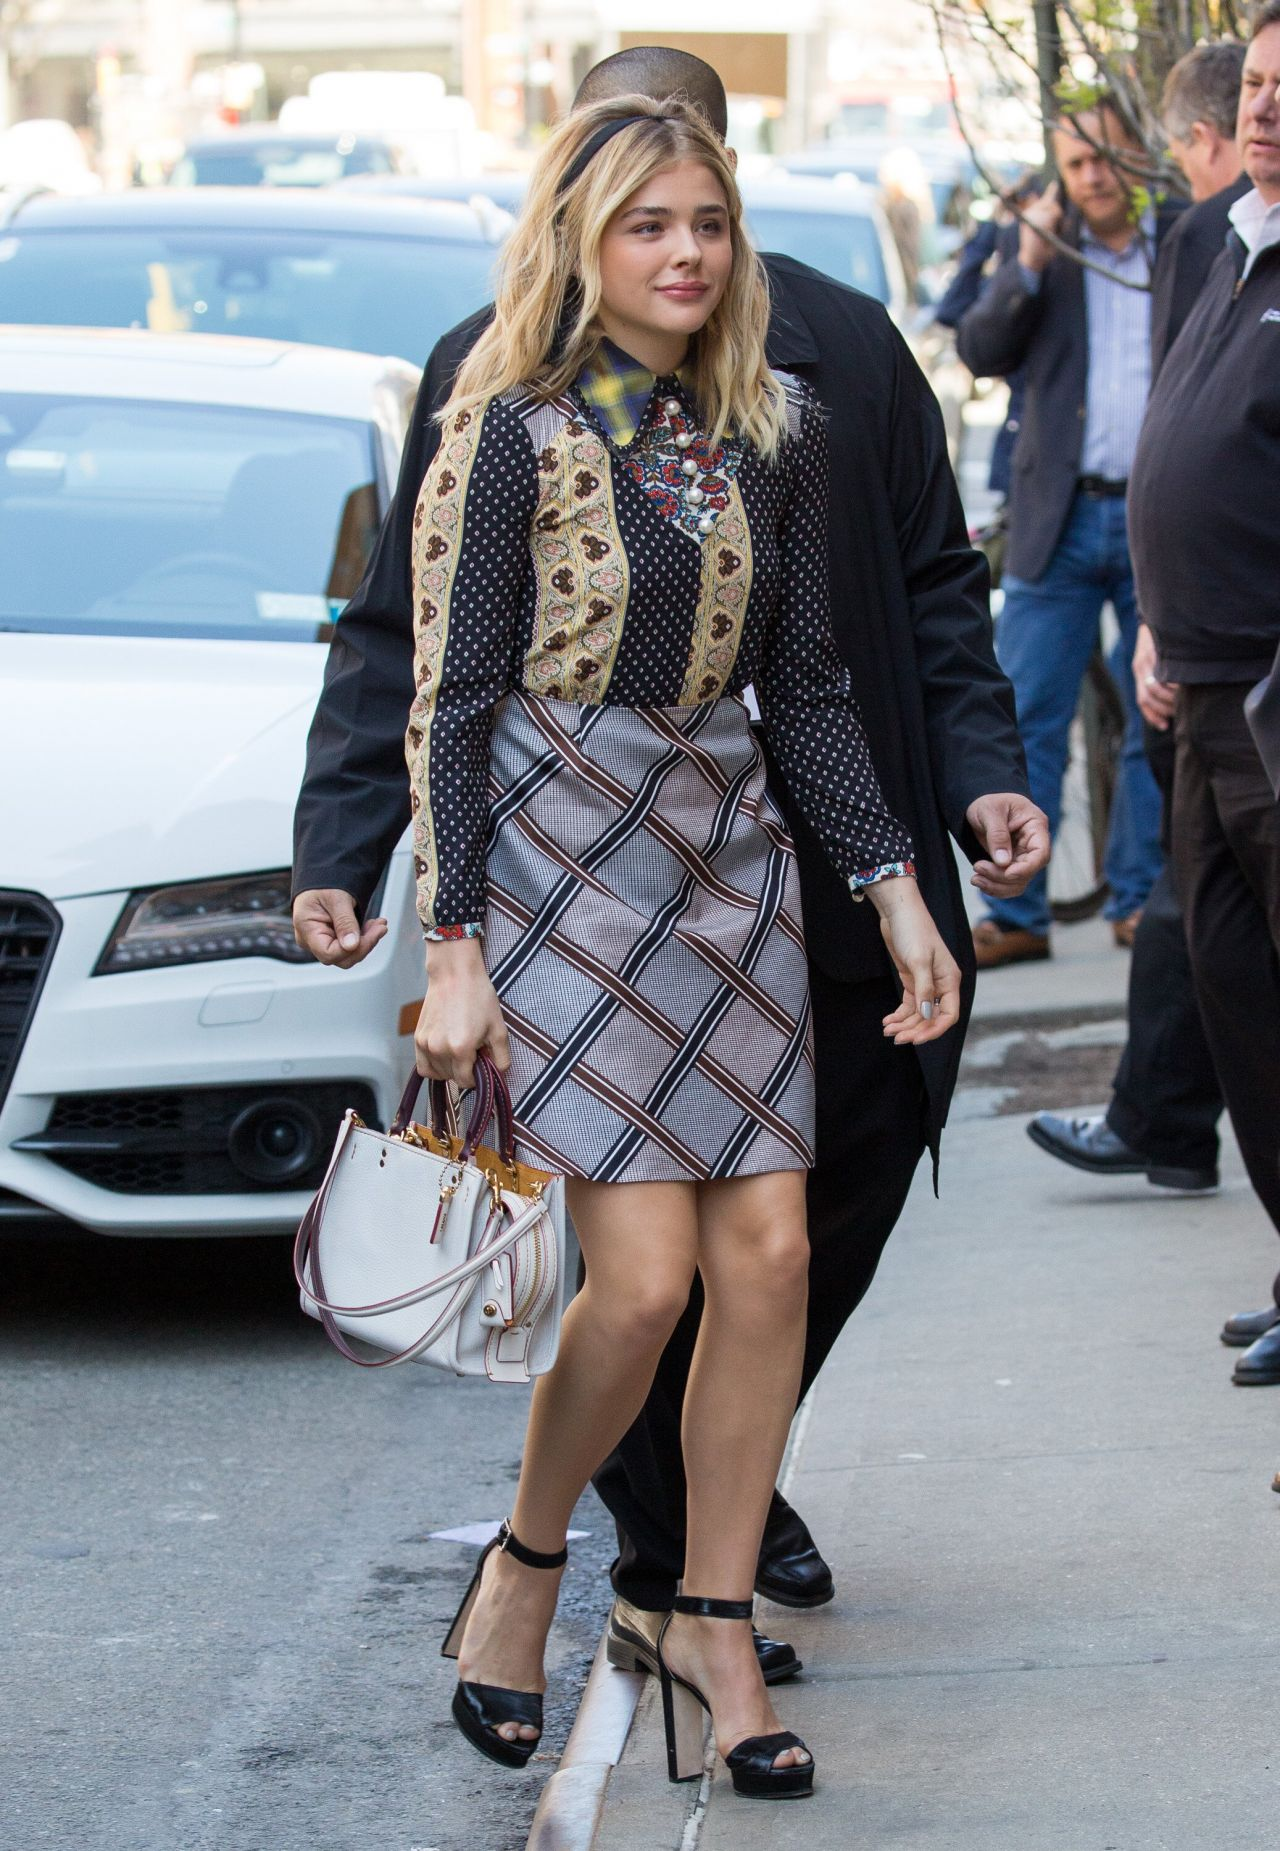 Chloe Moretz Street Style - Arrives at Her Hotel in New